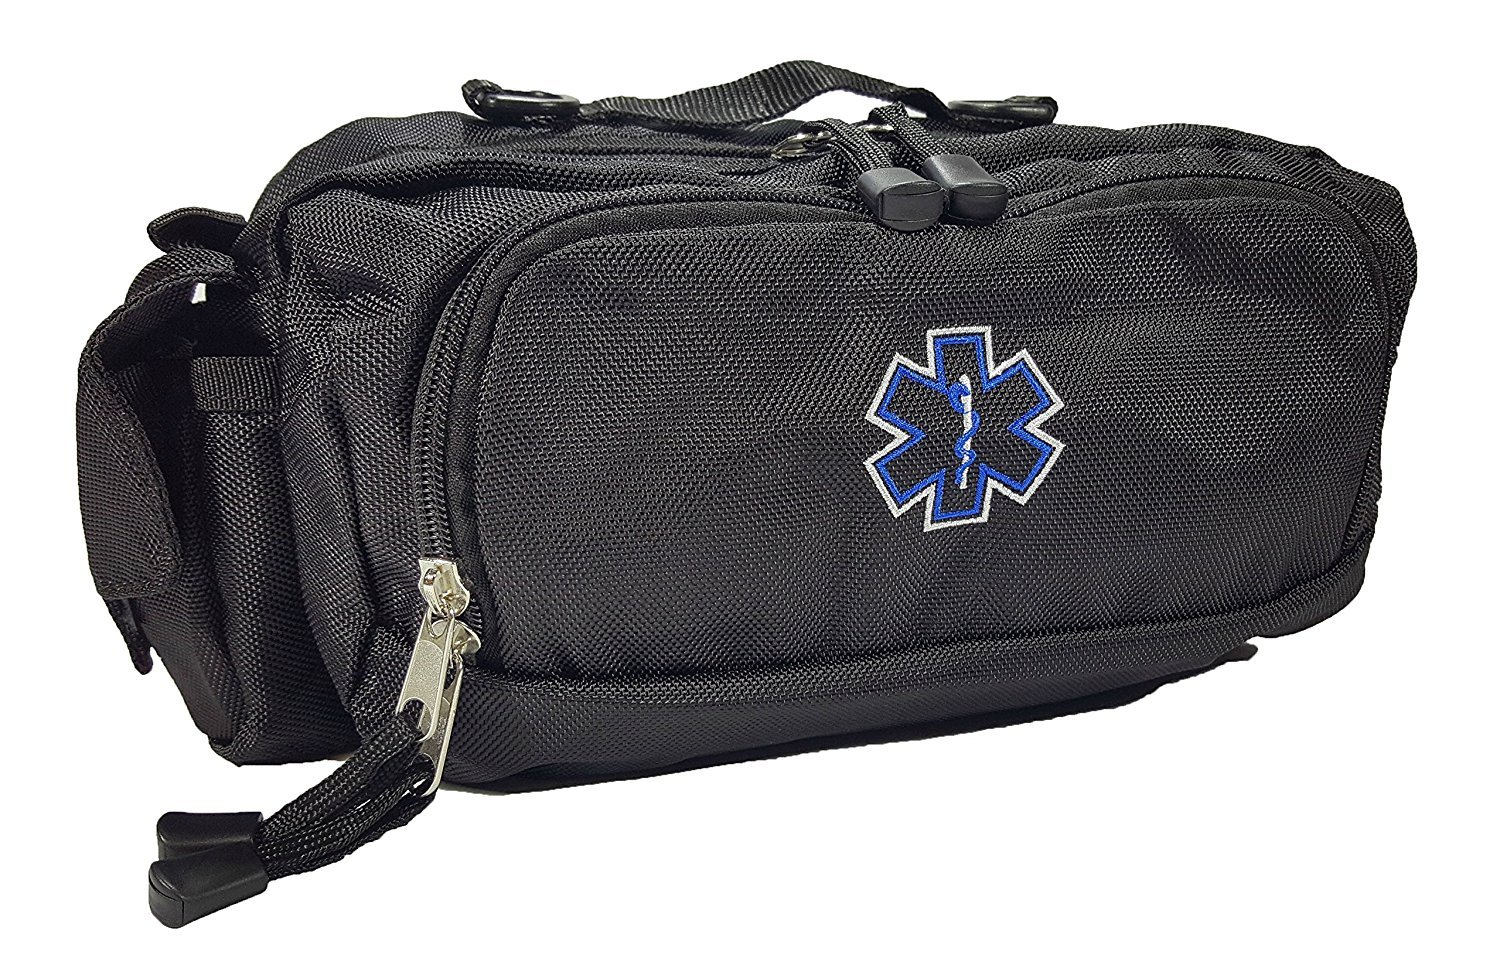 LINE2design Deluxe First Aid, First Responder Fanny Pack Large EMS, EMT, Paramedic Fanny Pack, With Multiple Internal Pockets Bag - Black